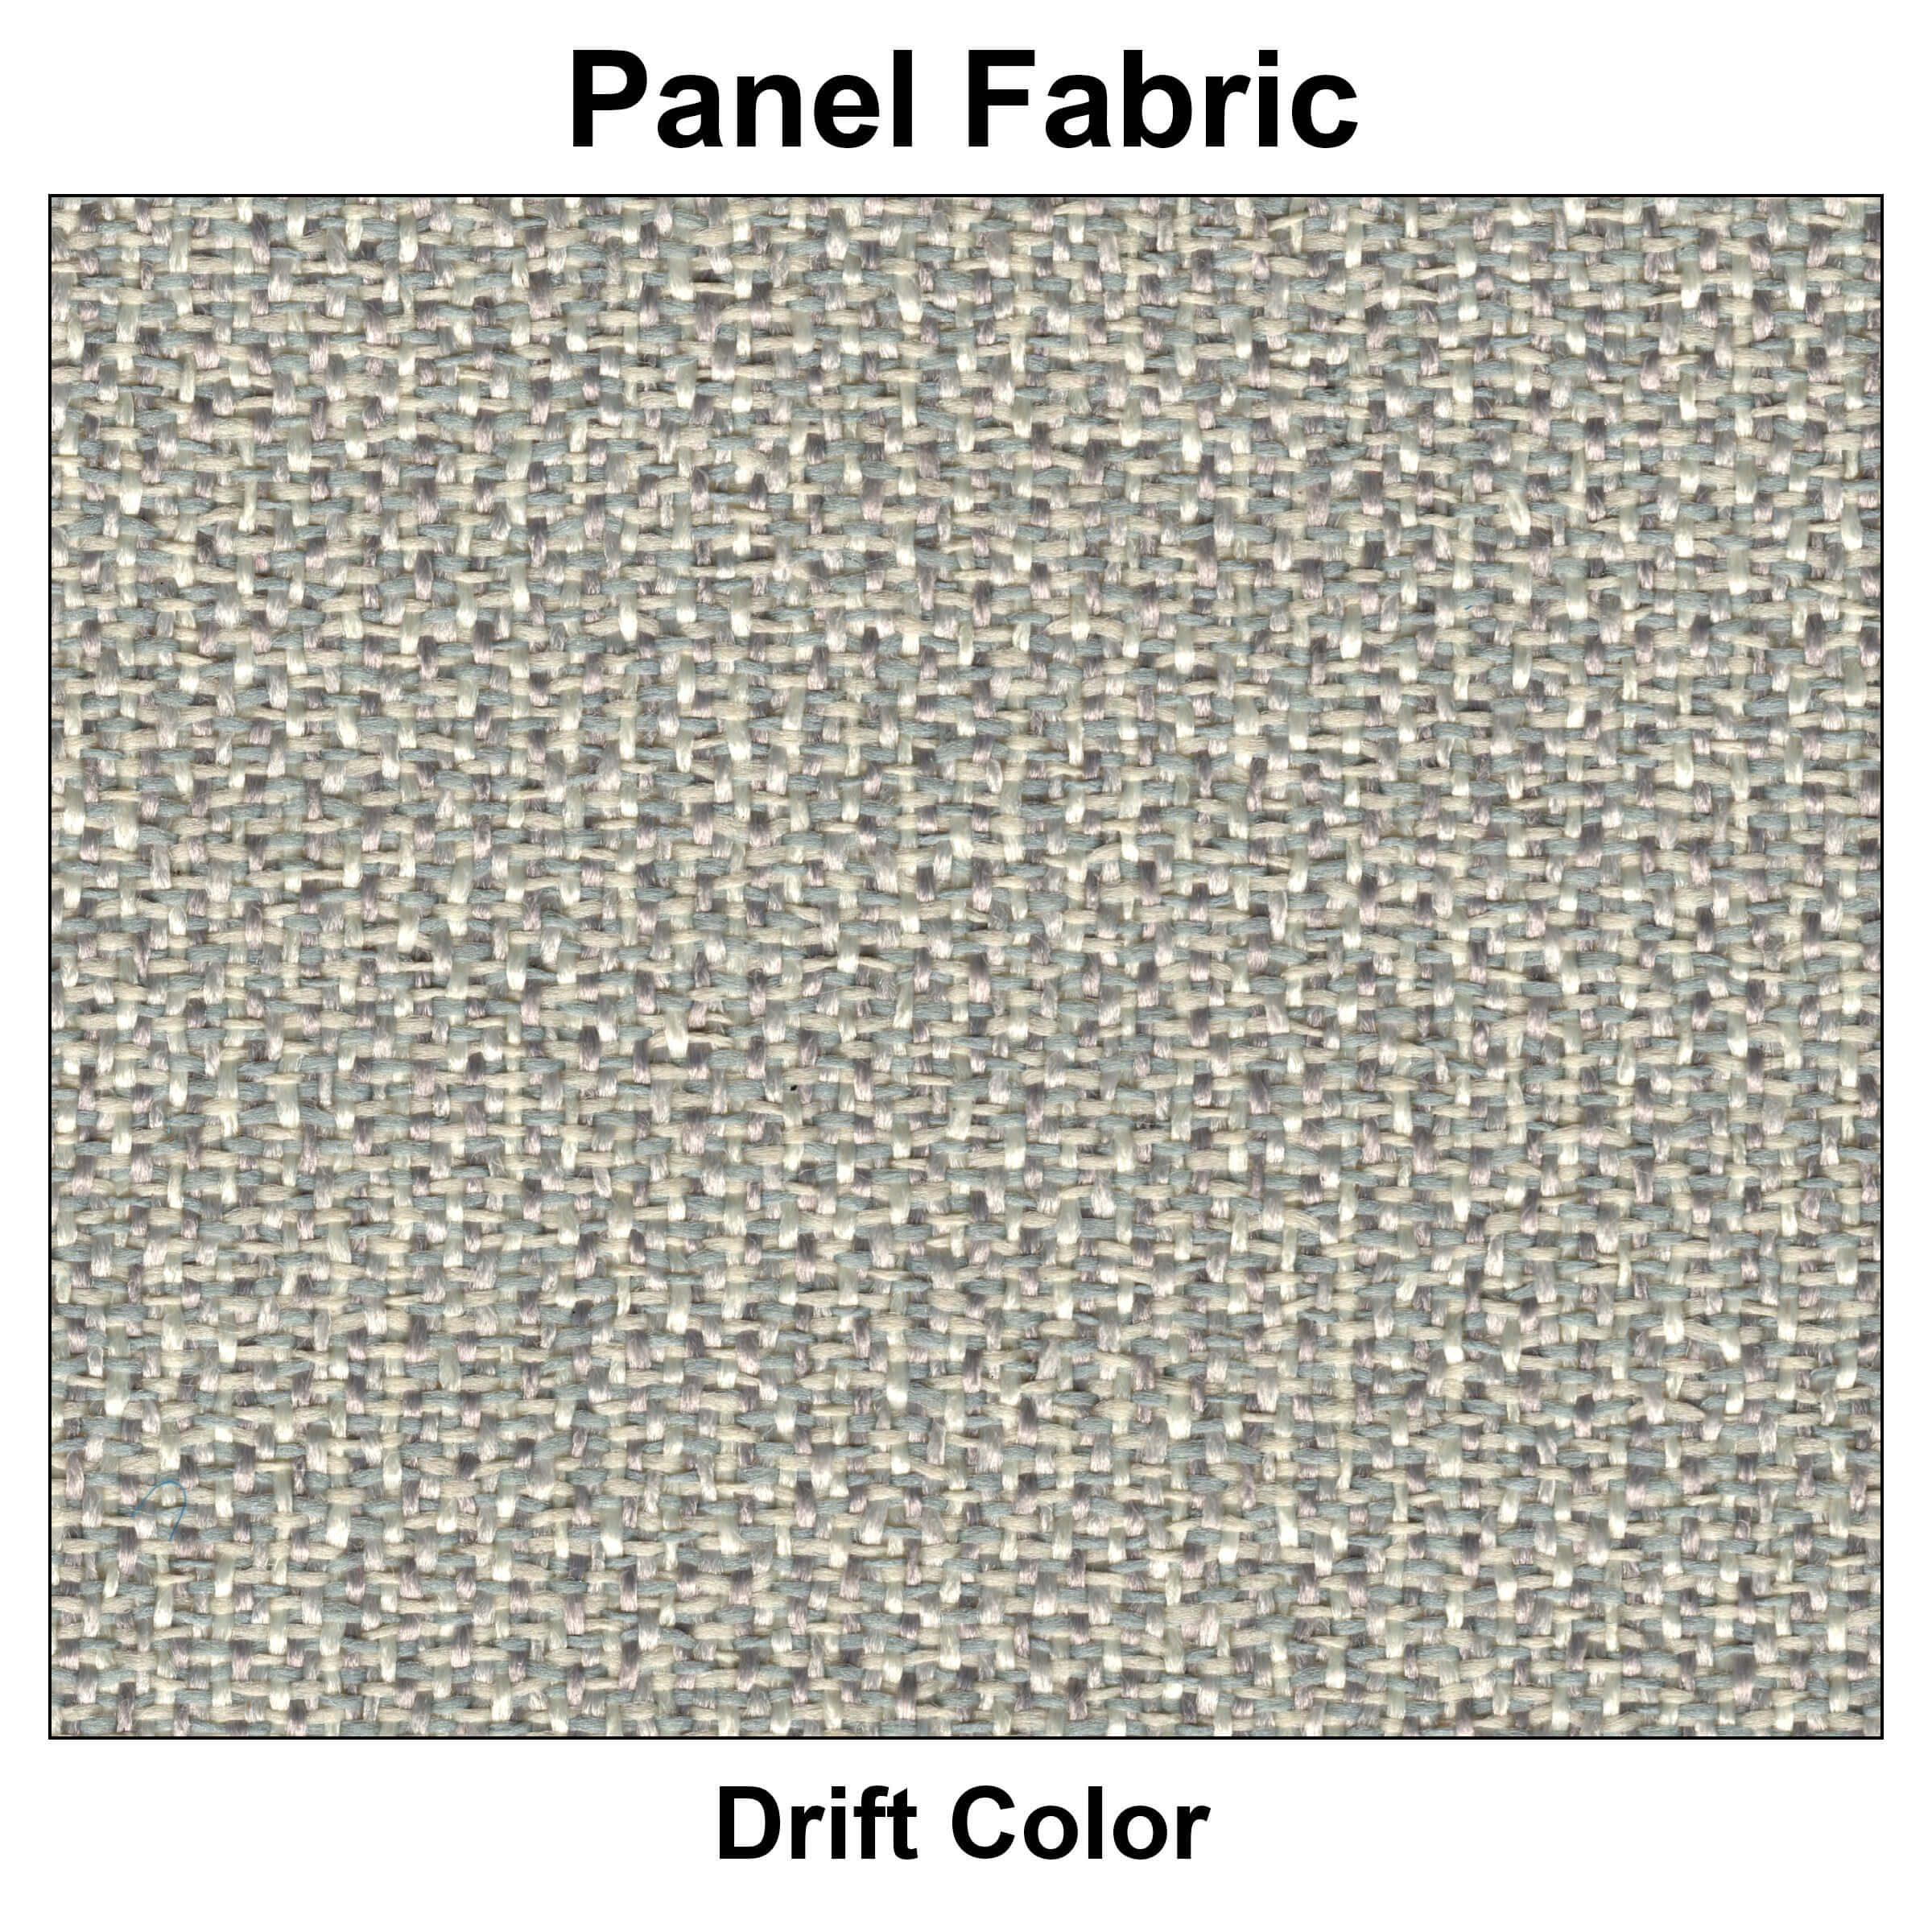 Modular office desk furniture fabric 1 2 3 4 5 6 7 8 9 10